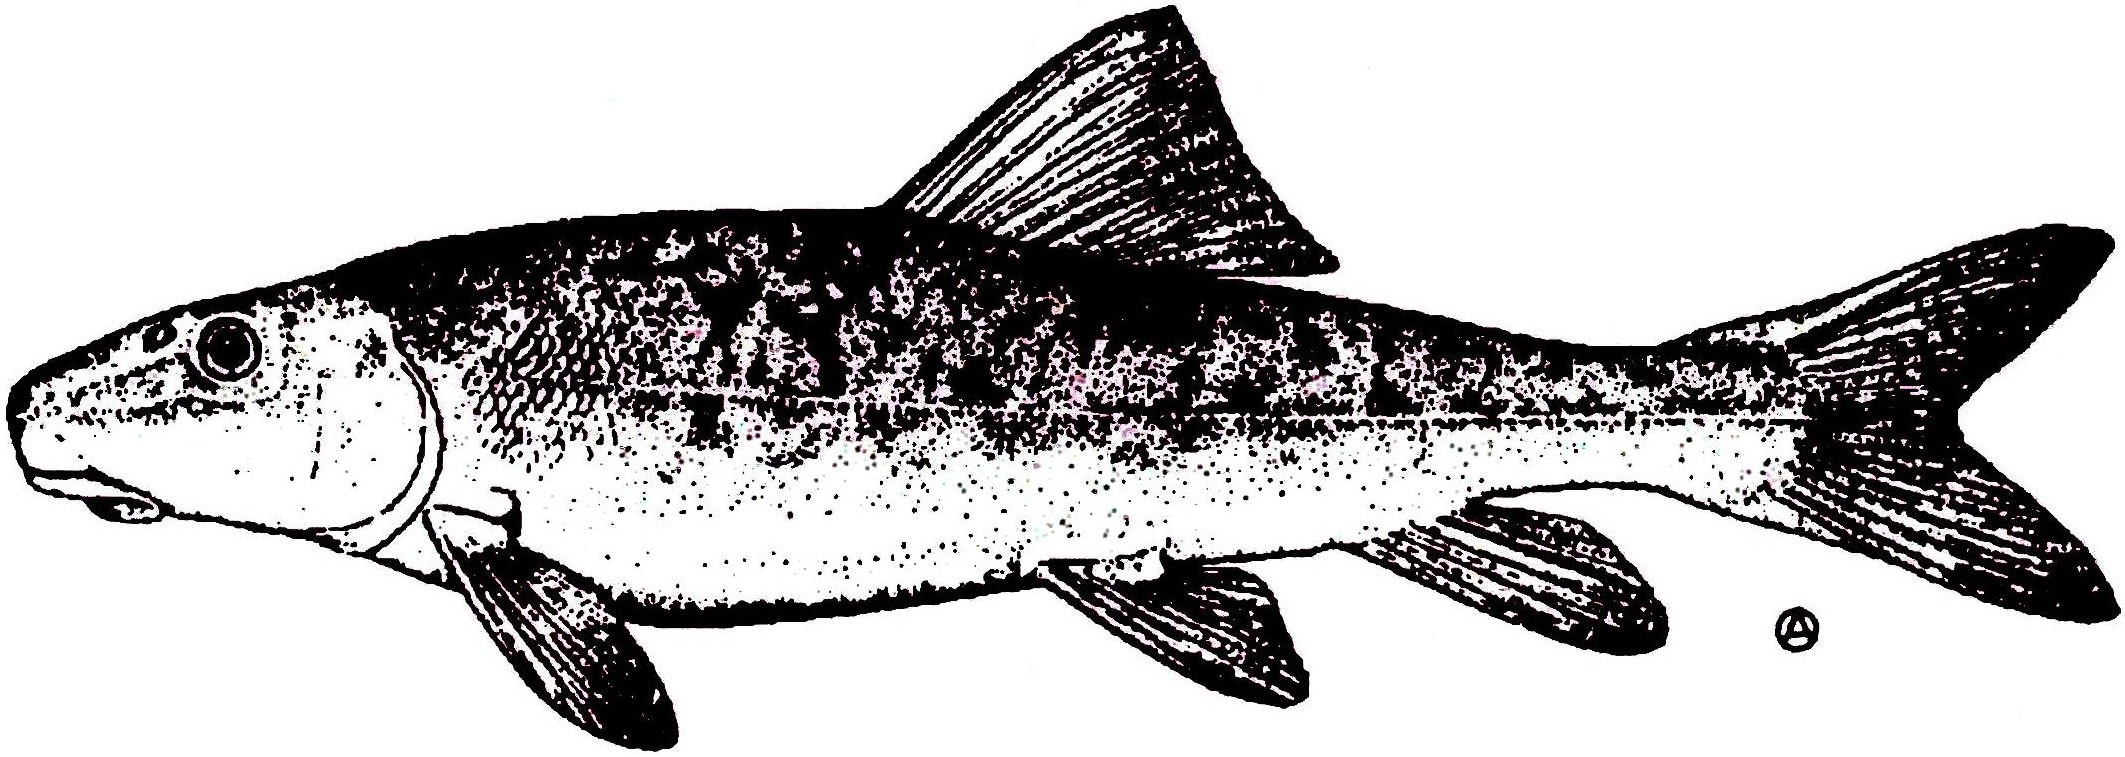 Black and white minnow clipart clipart library stock Sucker-Minnow Identification Guide | clipart library stock